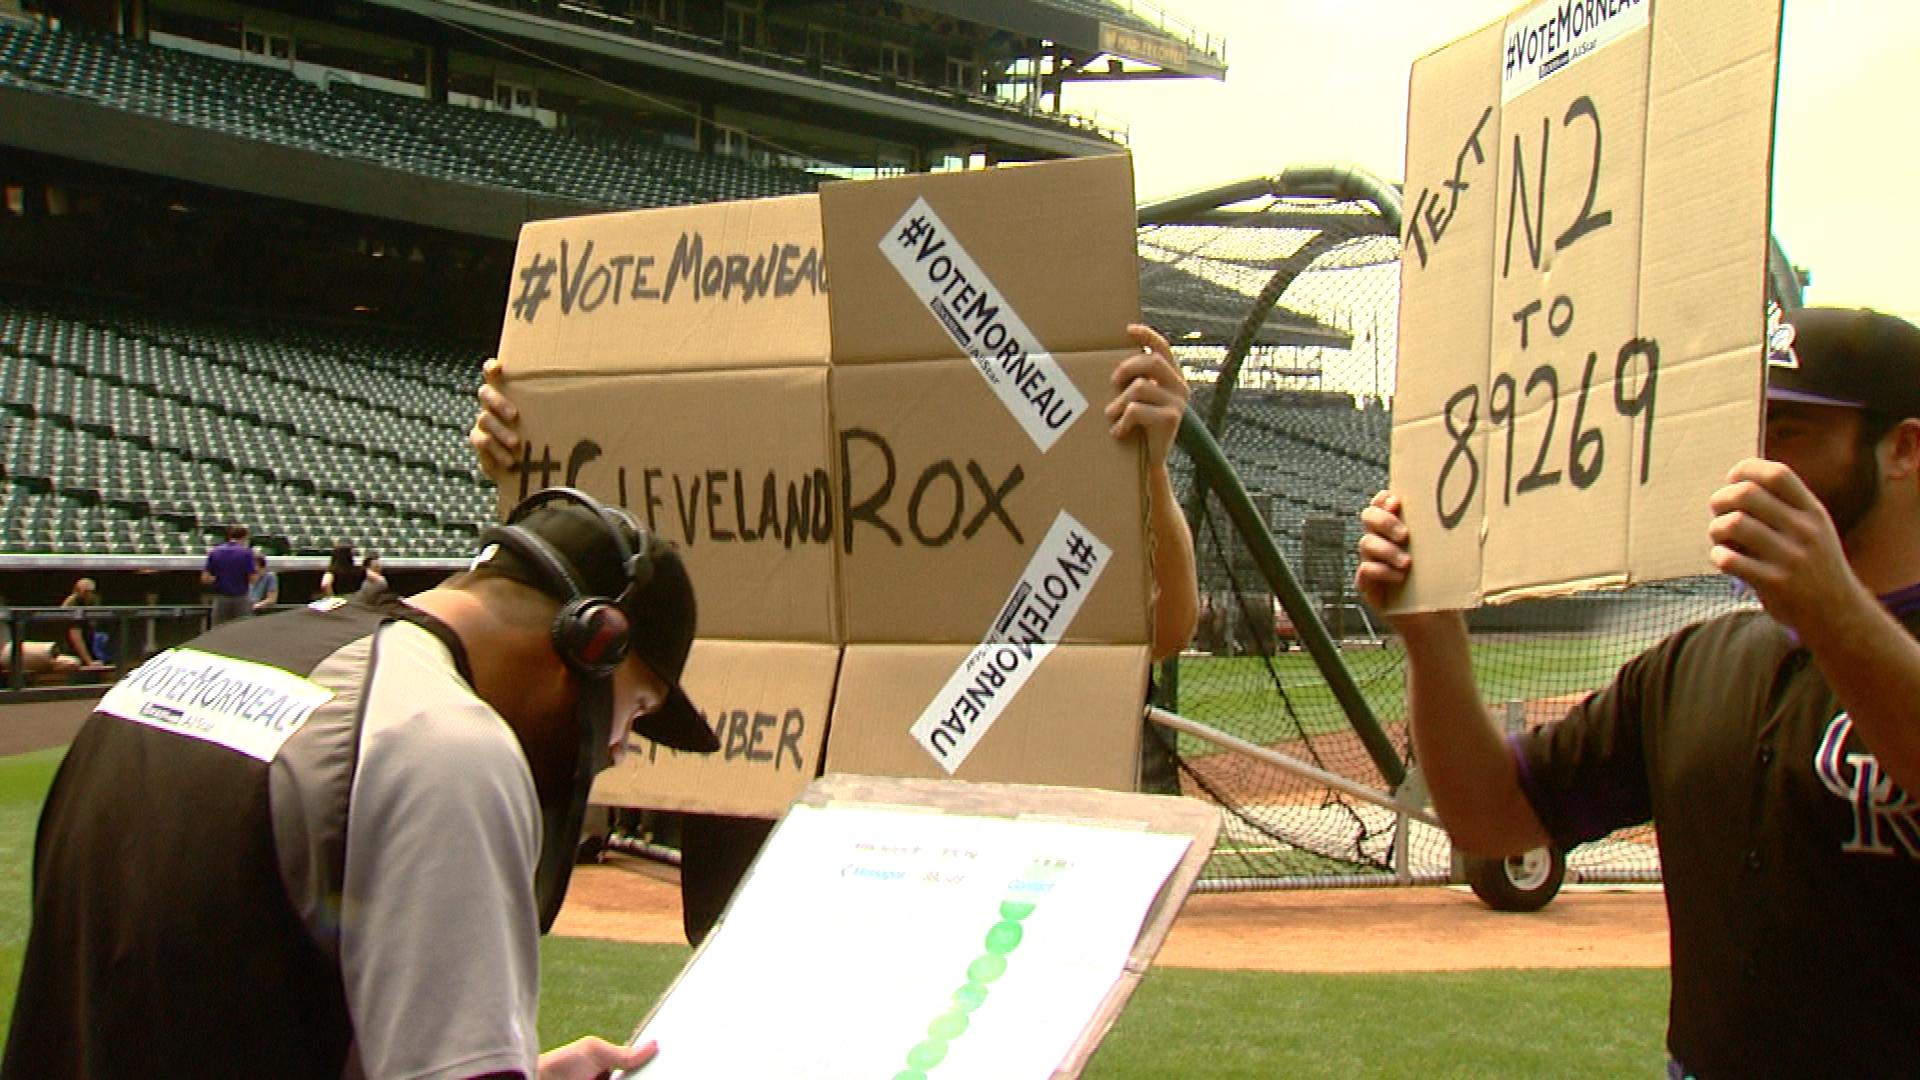 Rockies players holding up signs asking fans to vote for Justin Morneau while he was doing TV interviews on Tuesday (credit: CBS)